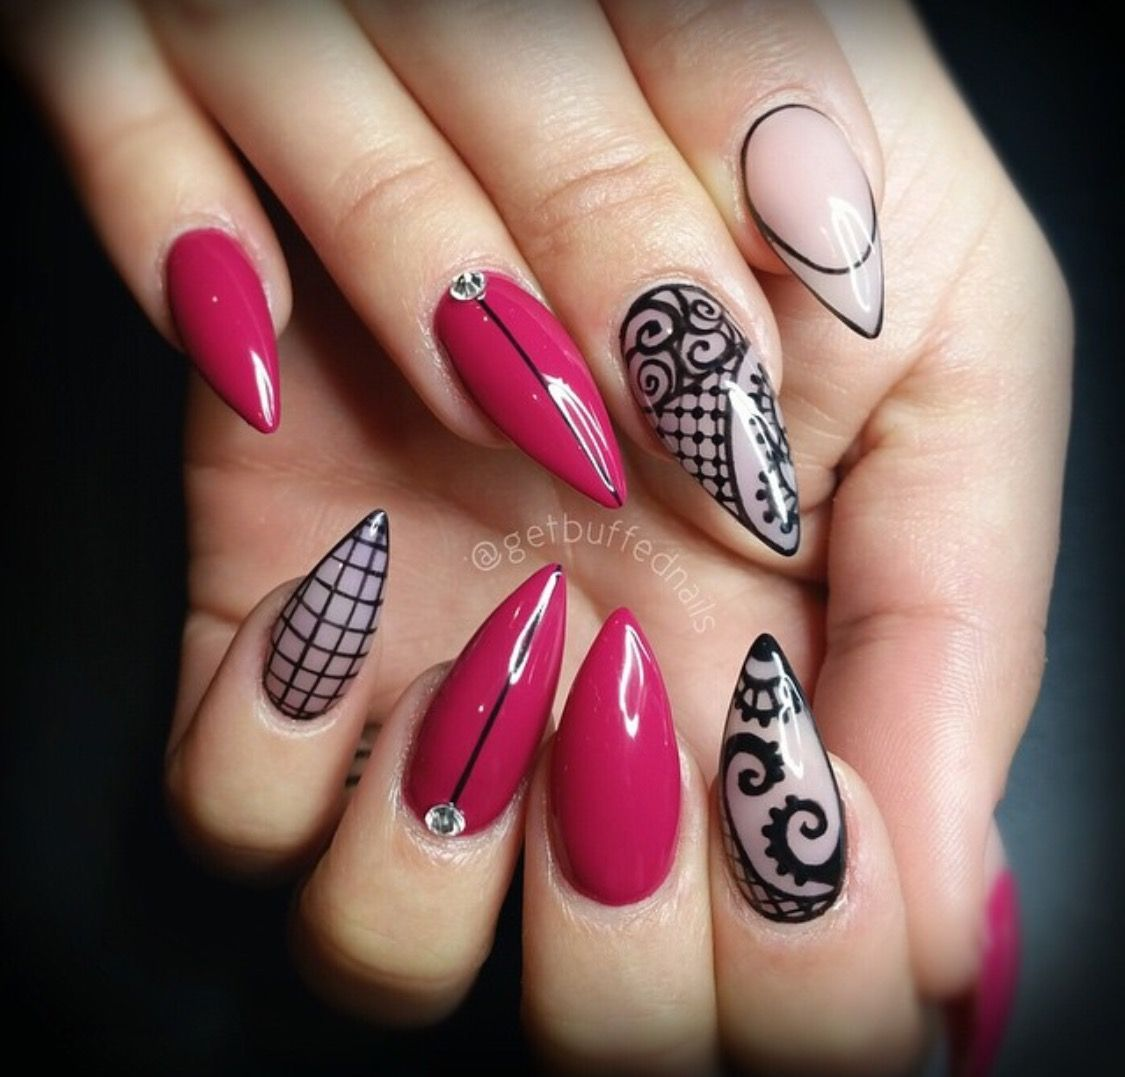 Pin by Schnee Orosco on Nails | Pinterest | Manicure, Crazy nails ...